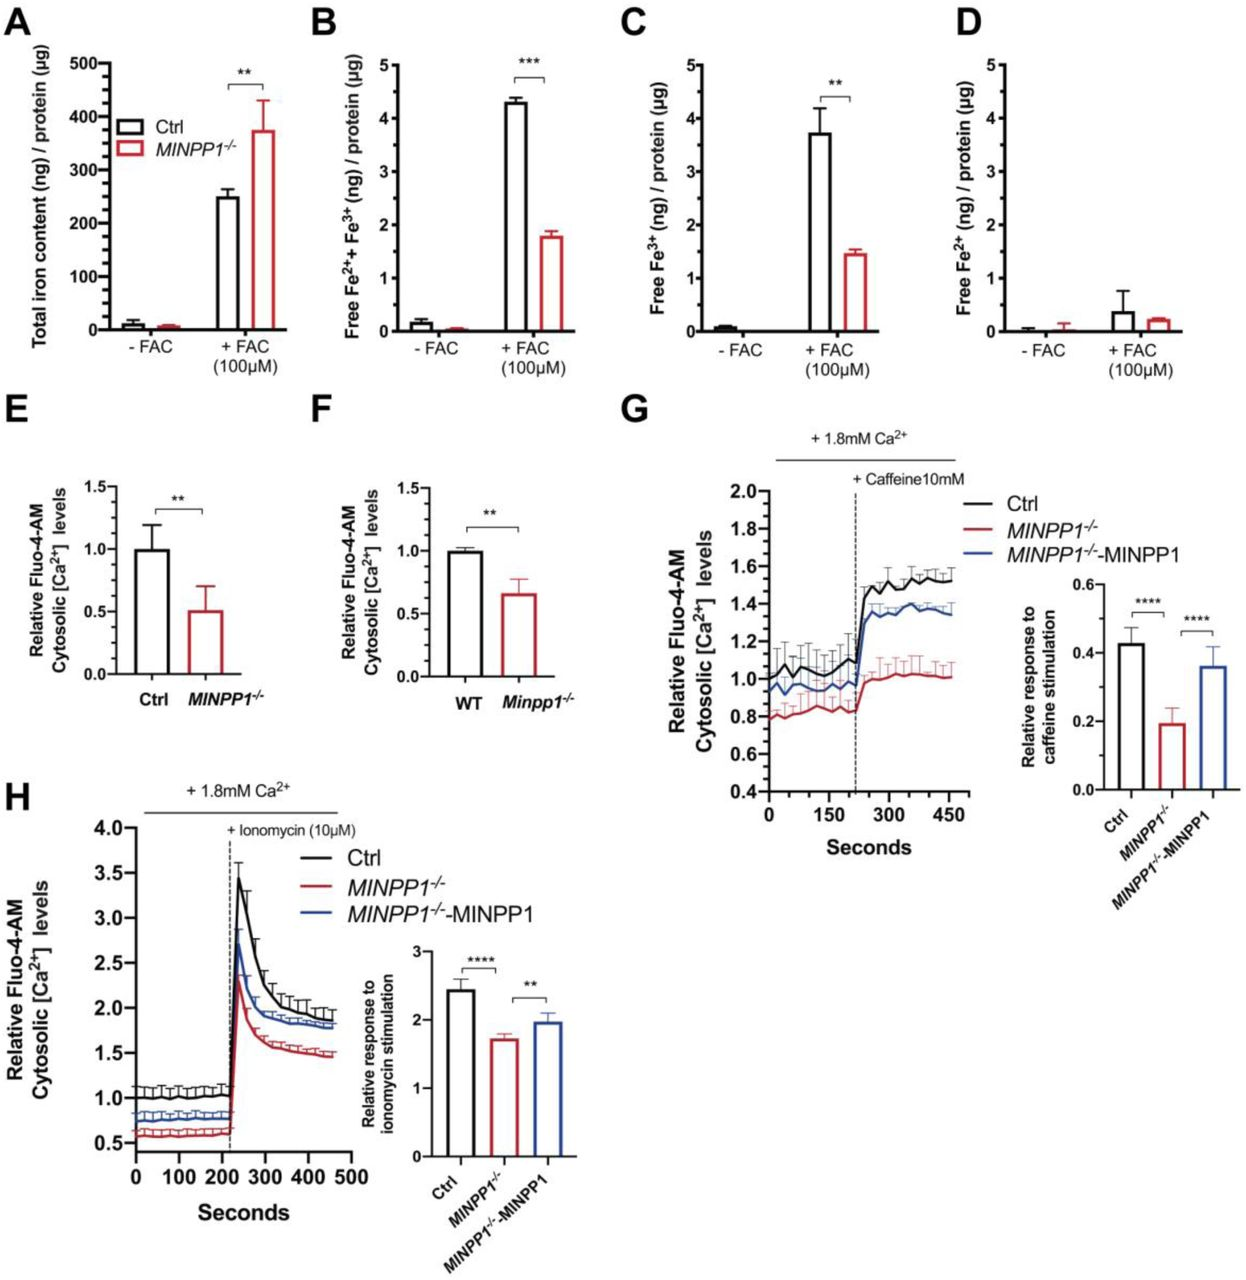 Altered iron and calcium homeostasis in the absence of MINPP1 enzyme in HEK293 and Minpp1 -/- mouse neural progenitor cells. (A-D) Quantification of total iron content ( A ), free iron (Fe 2+ and Fe 3+ ) ( B ), Fe 3+ ( C ) and Fe 2+ ( D ) levels in extracts from control and MINPP1 -/- HEK293 cells grown under low (-FAC) and high iron (+FAC, 100 µM) conditions. All values are normalized to the total protein concentration and represent the mean ± s.d (n=3, Two way ANOVA Sidak test, **, *** indicate p value p